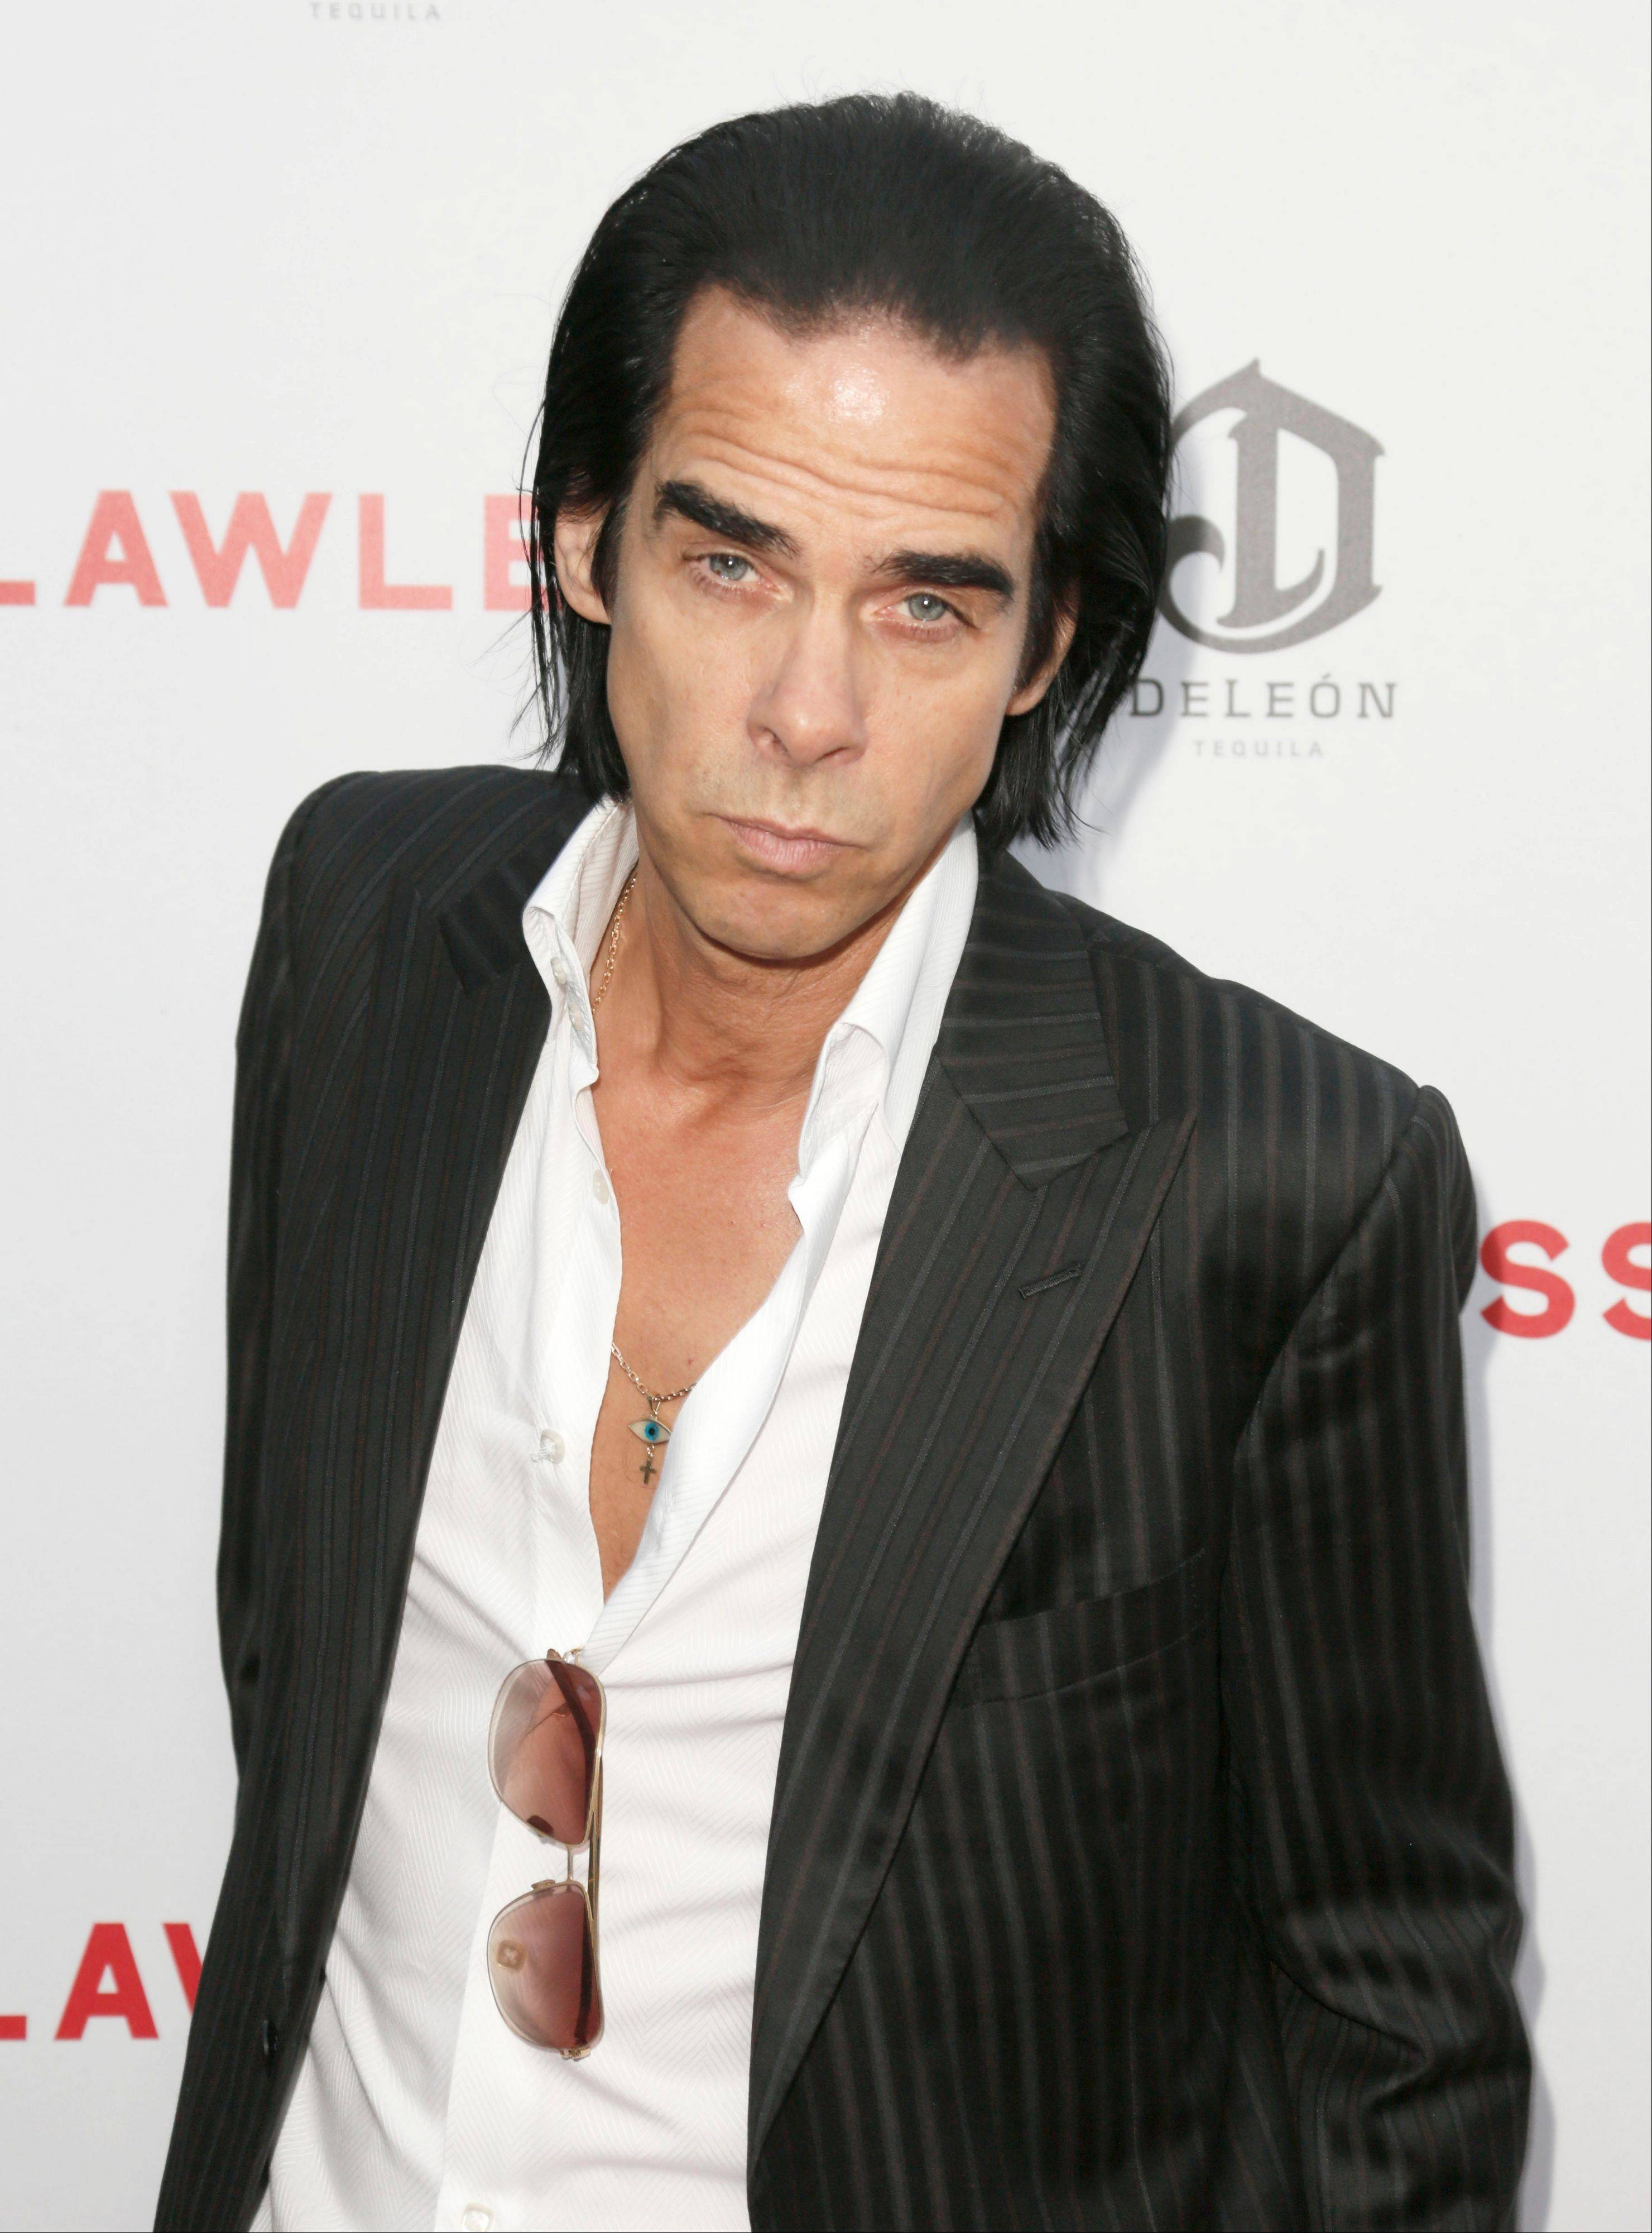 "Nick Cave, the Australian singer-songwriter, has gradually expanded beyond music into fiction, poetry and screenwriting. His new film, ""Lawless,"" which stars Shia LaBeouf and Tom Hardy, is his second film with director John Hillcoat following the even bloodier Aussie Western ""The Proposition."""